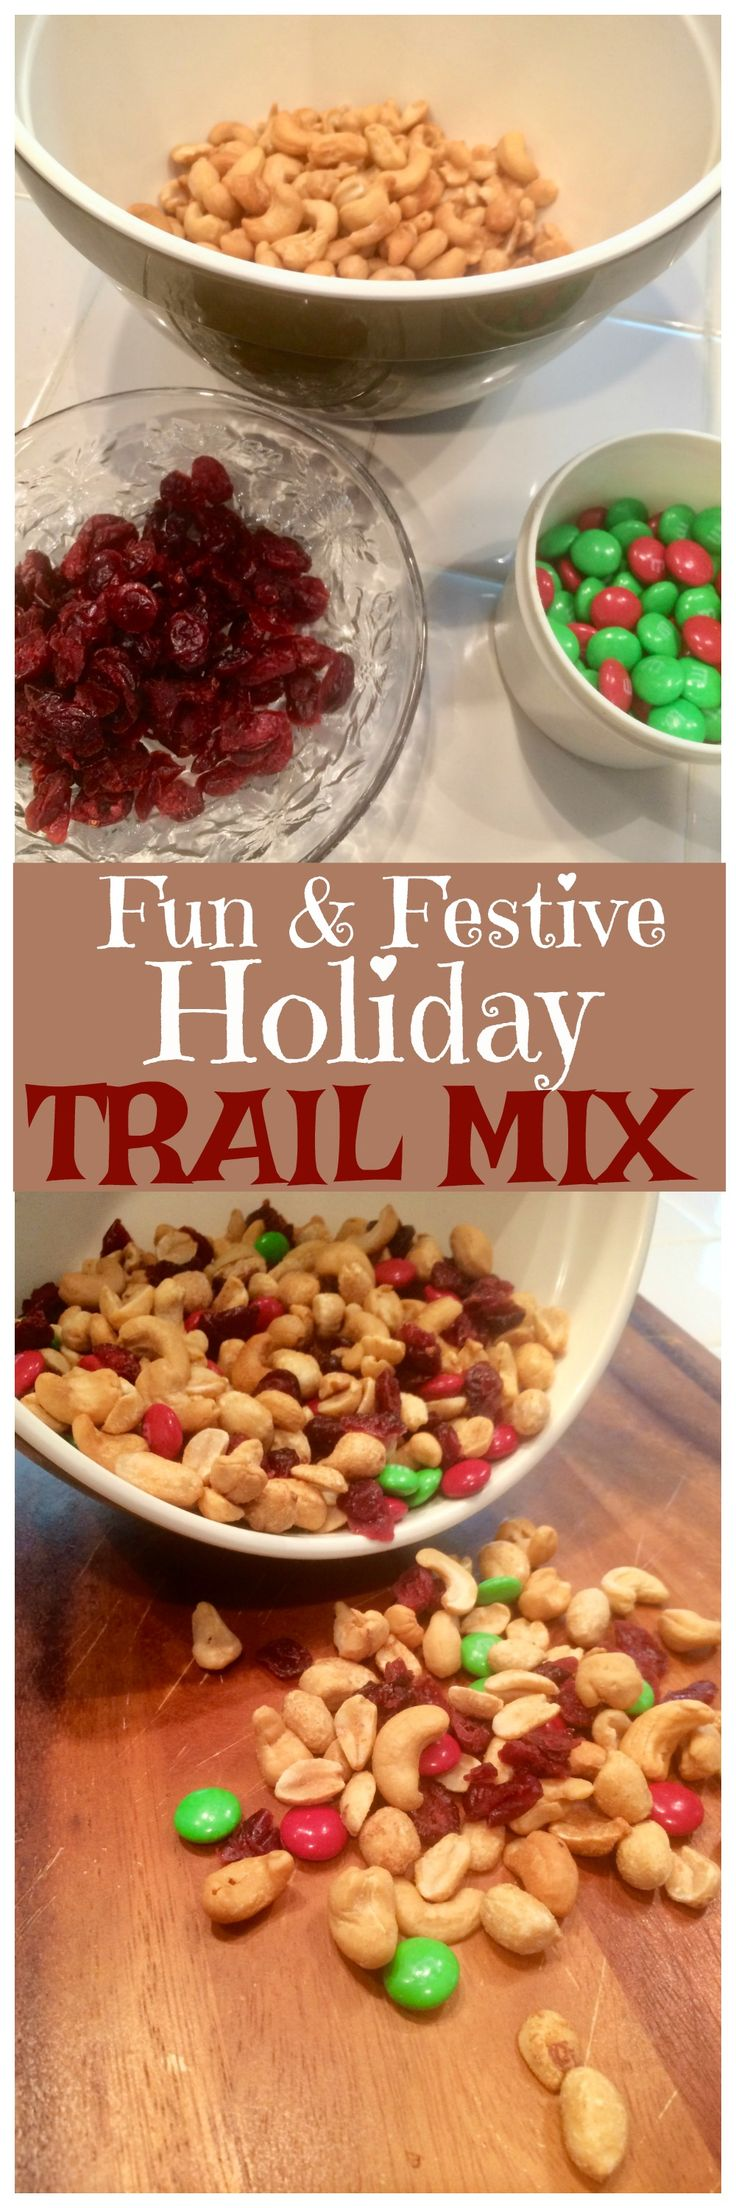 This fun and festive holiday trail mix makes a great inexpensive homemade holiday gift idea! via @OCRaquel #recipe via @OCRaquel